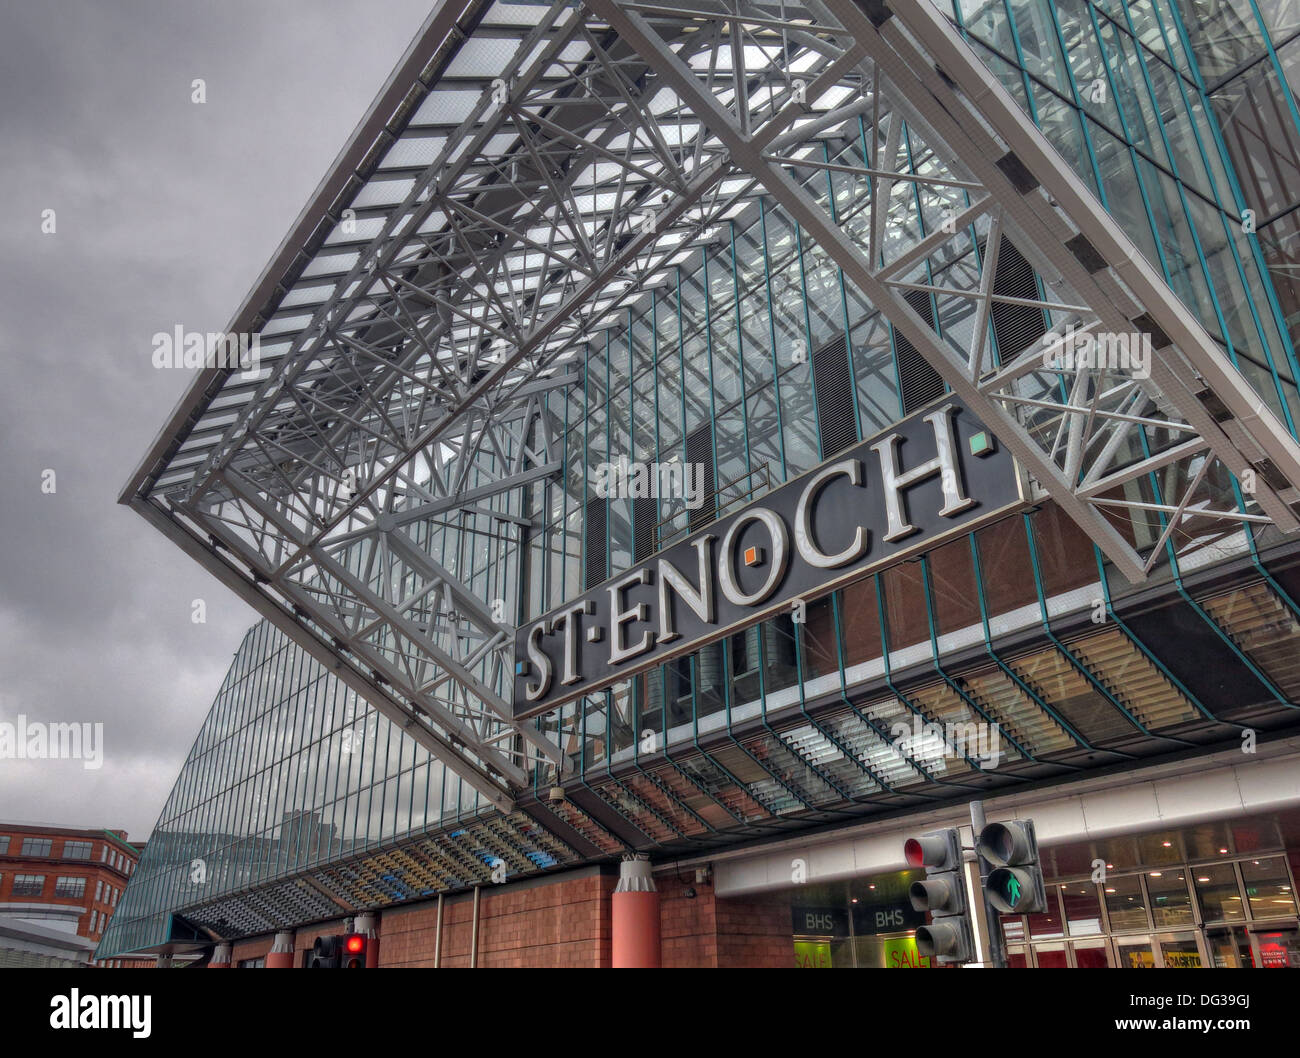 St Enoch Shopping retail shopping centre Glasgow - Stock Image